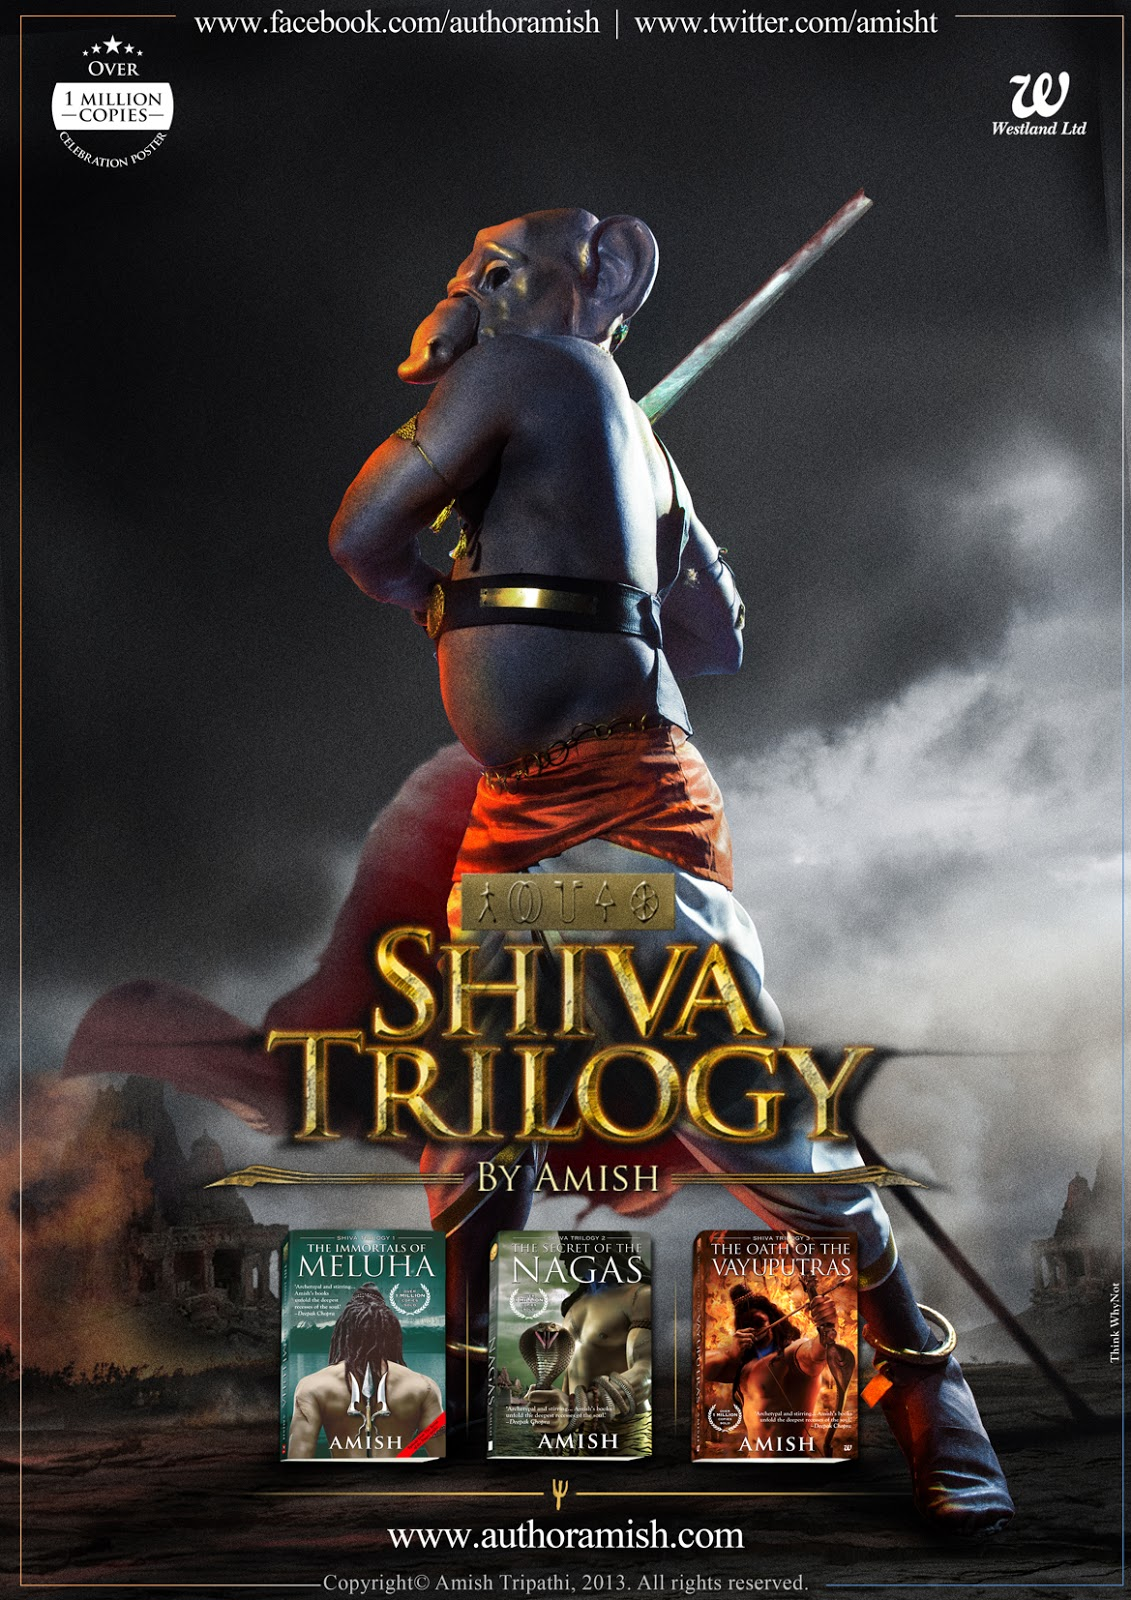 Shiva Trilogy Wallpapers Hd Work Shiva Trilogy Posters